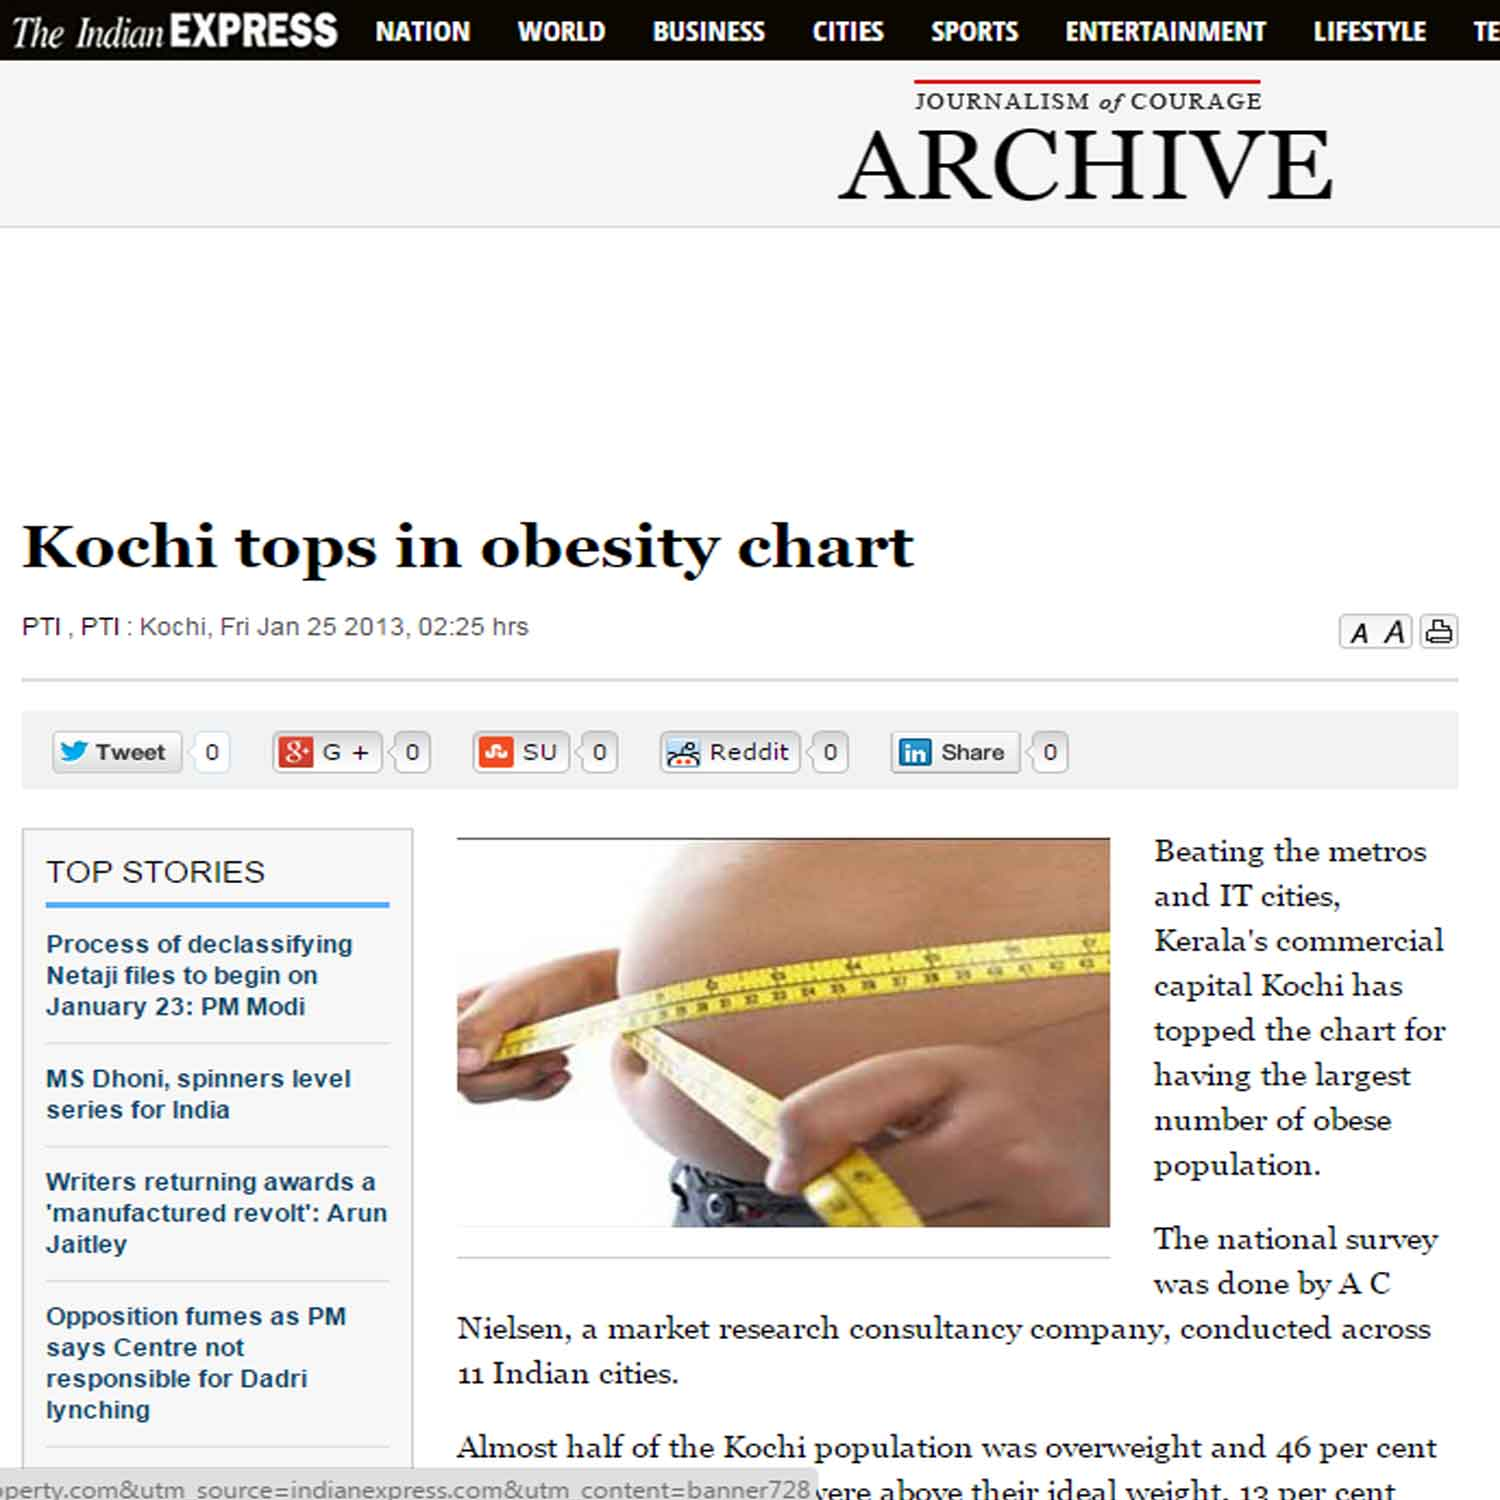 Kochi tops in obesity chart